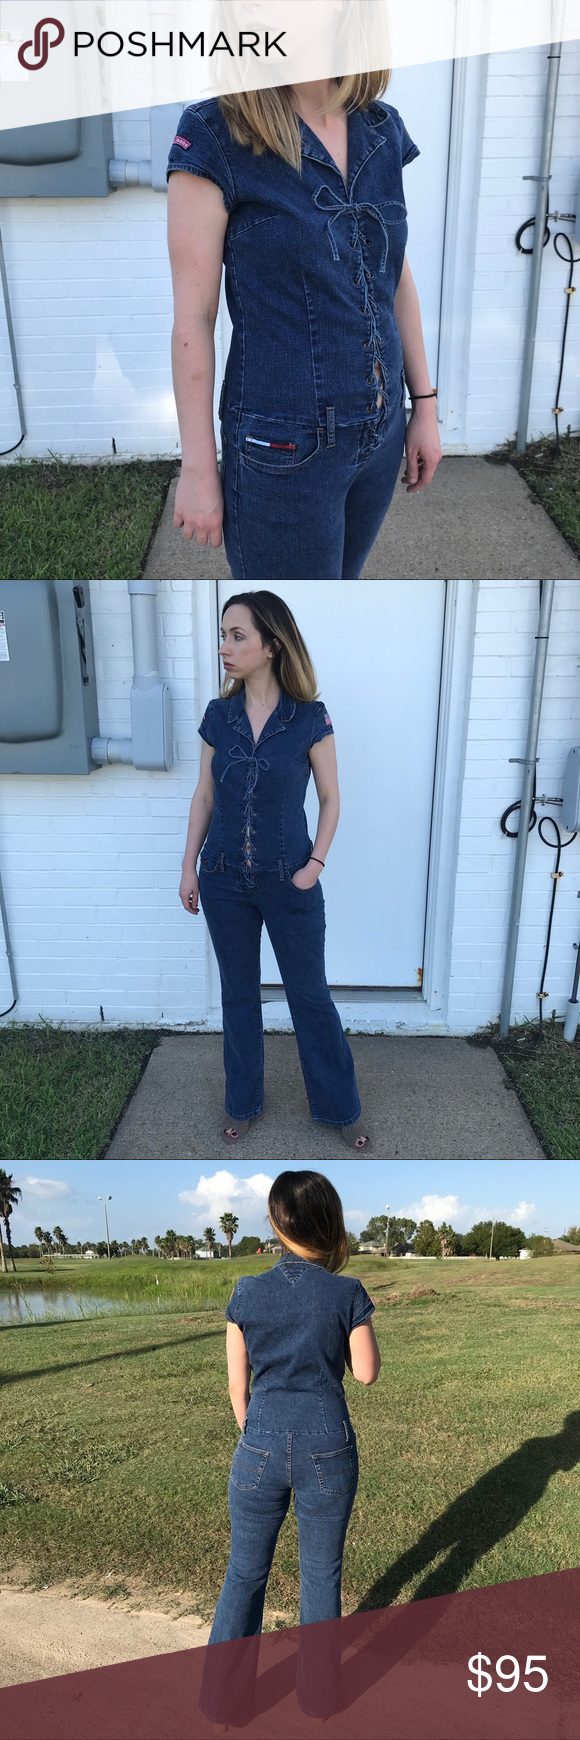 192173b95dd9 VTG Tommy Hilfiger Lace Up Denim Jumpsuit 90s Excellent vintage condition.  Lace-up denim